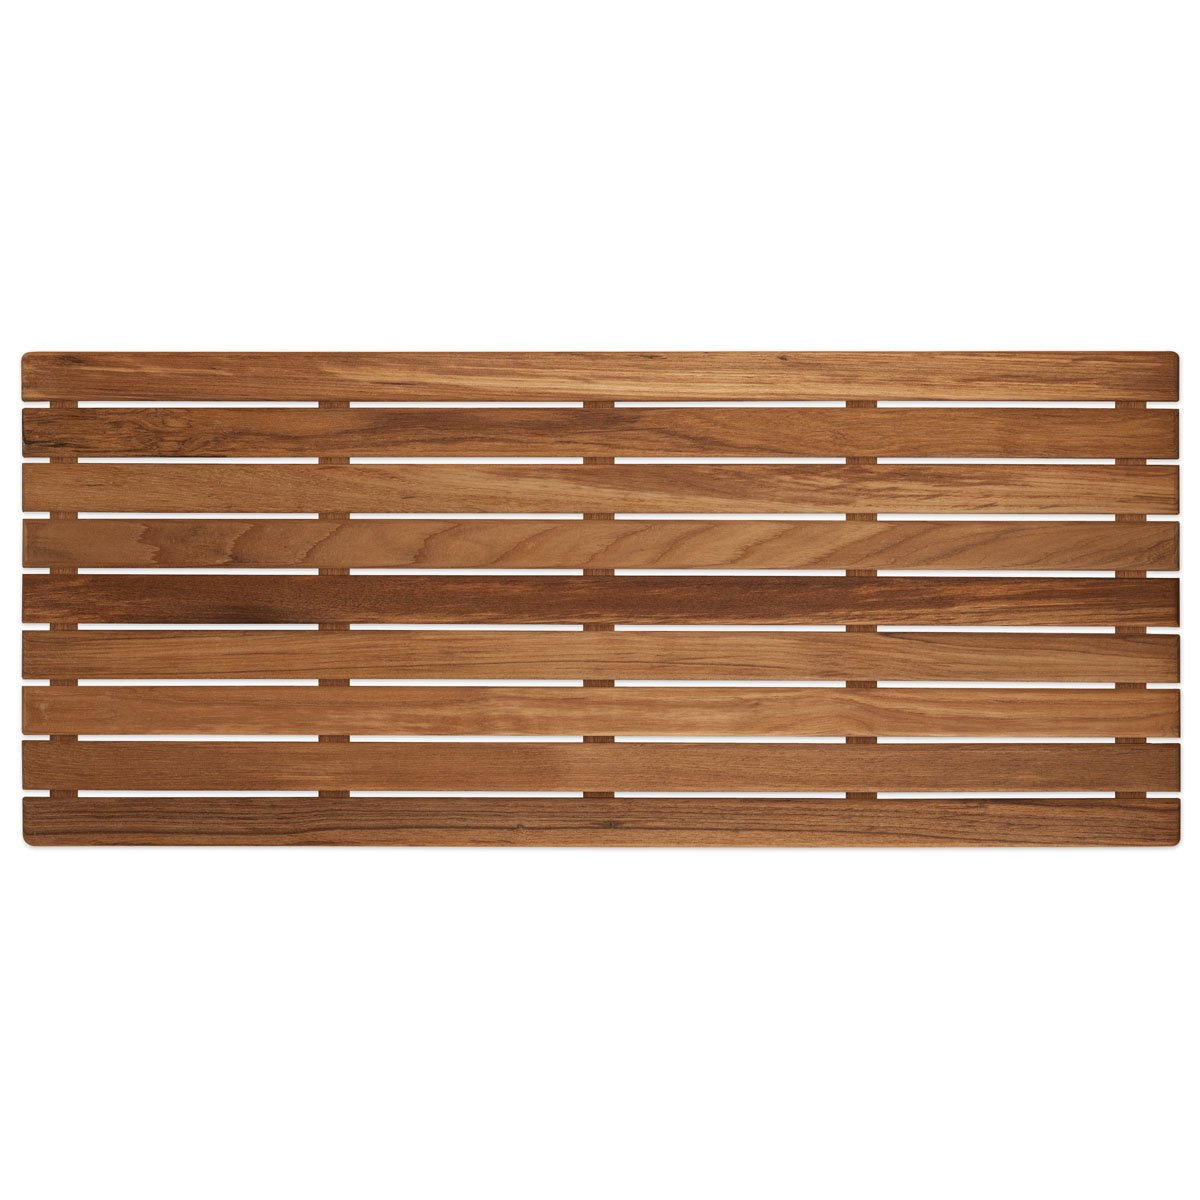 32'' x 14'' Plantation Teak Shower Mat | 1-1/4'' High | Slip-Resistant Surface by Teakworks4u